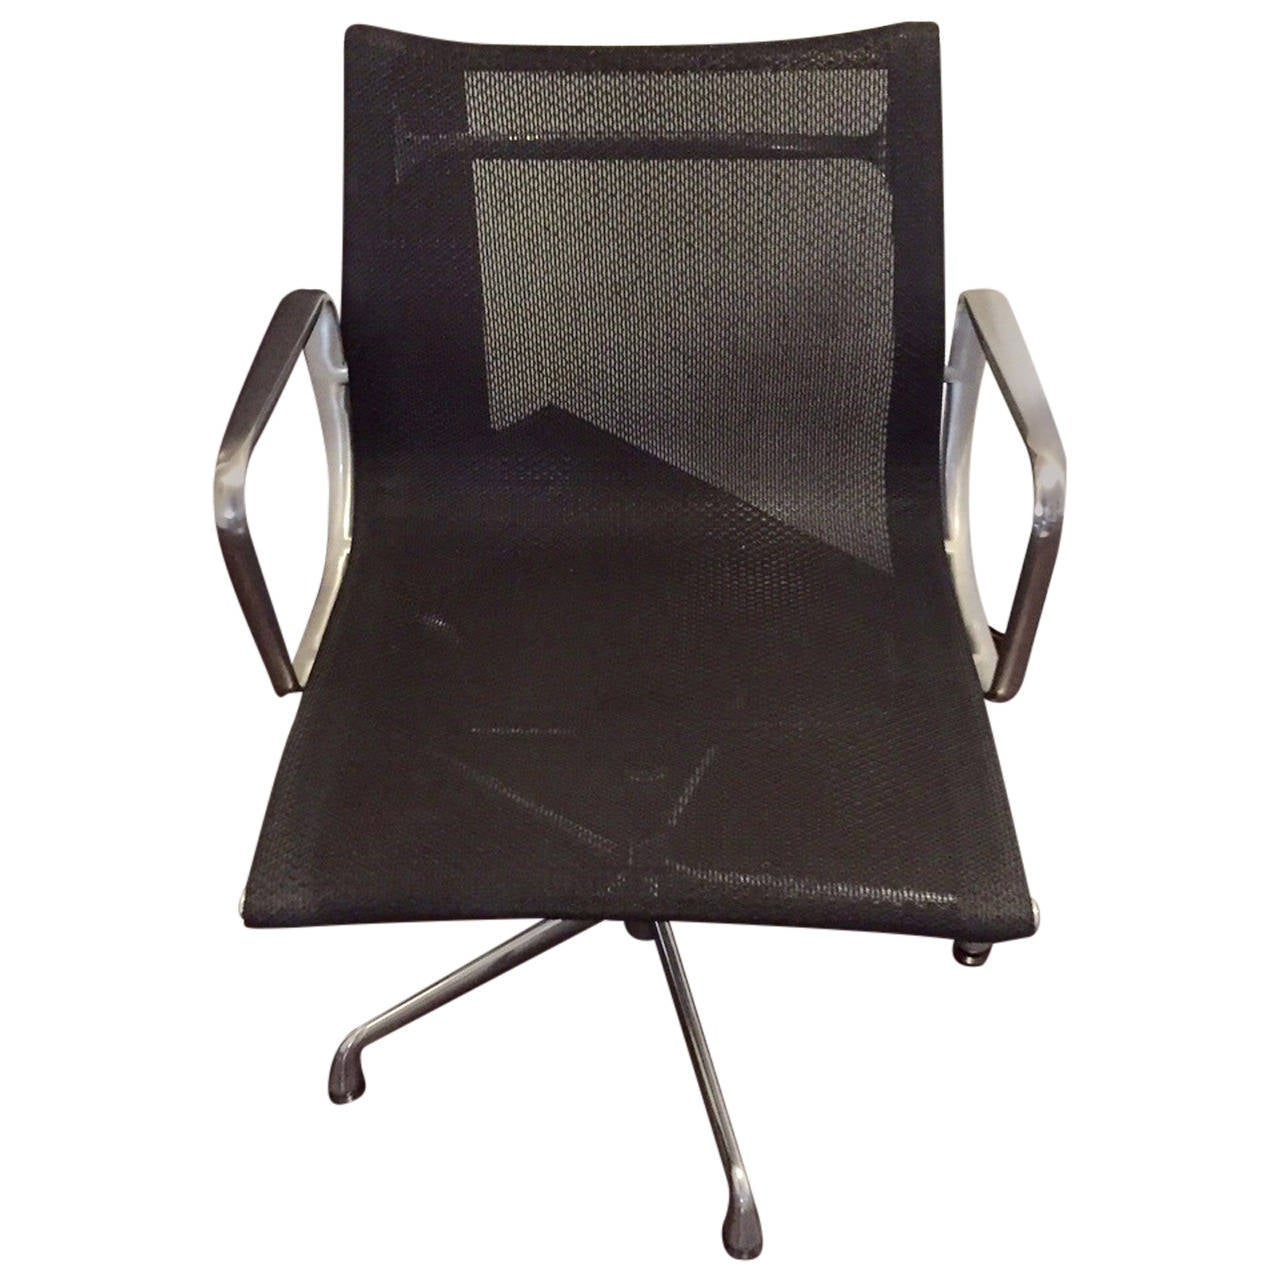 Eames aluminum group management chair by herman miller for for Herman miller eames aluminum group management chair